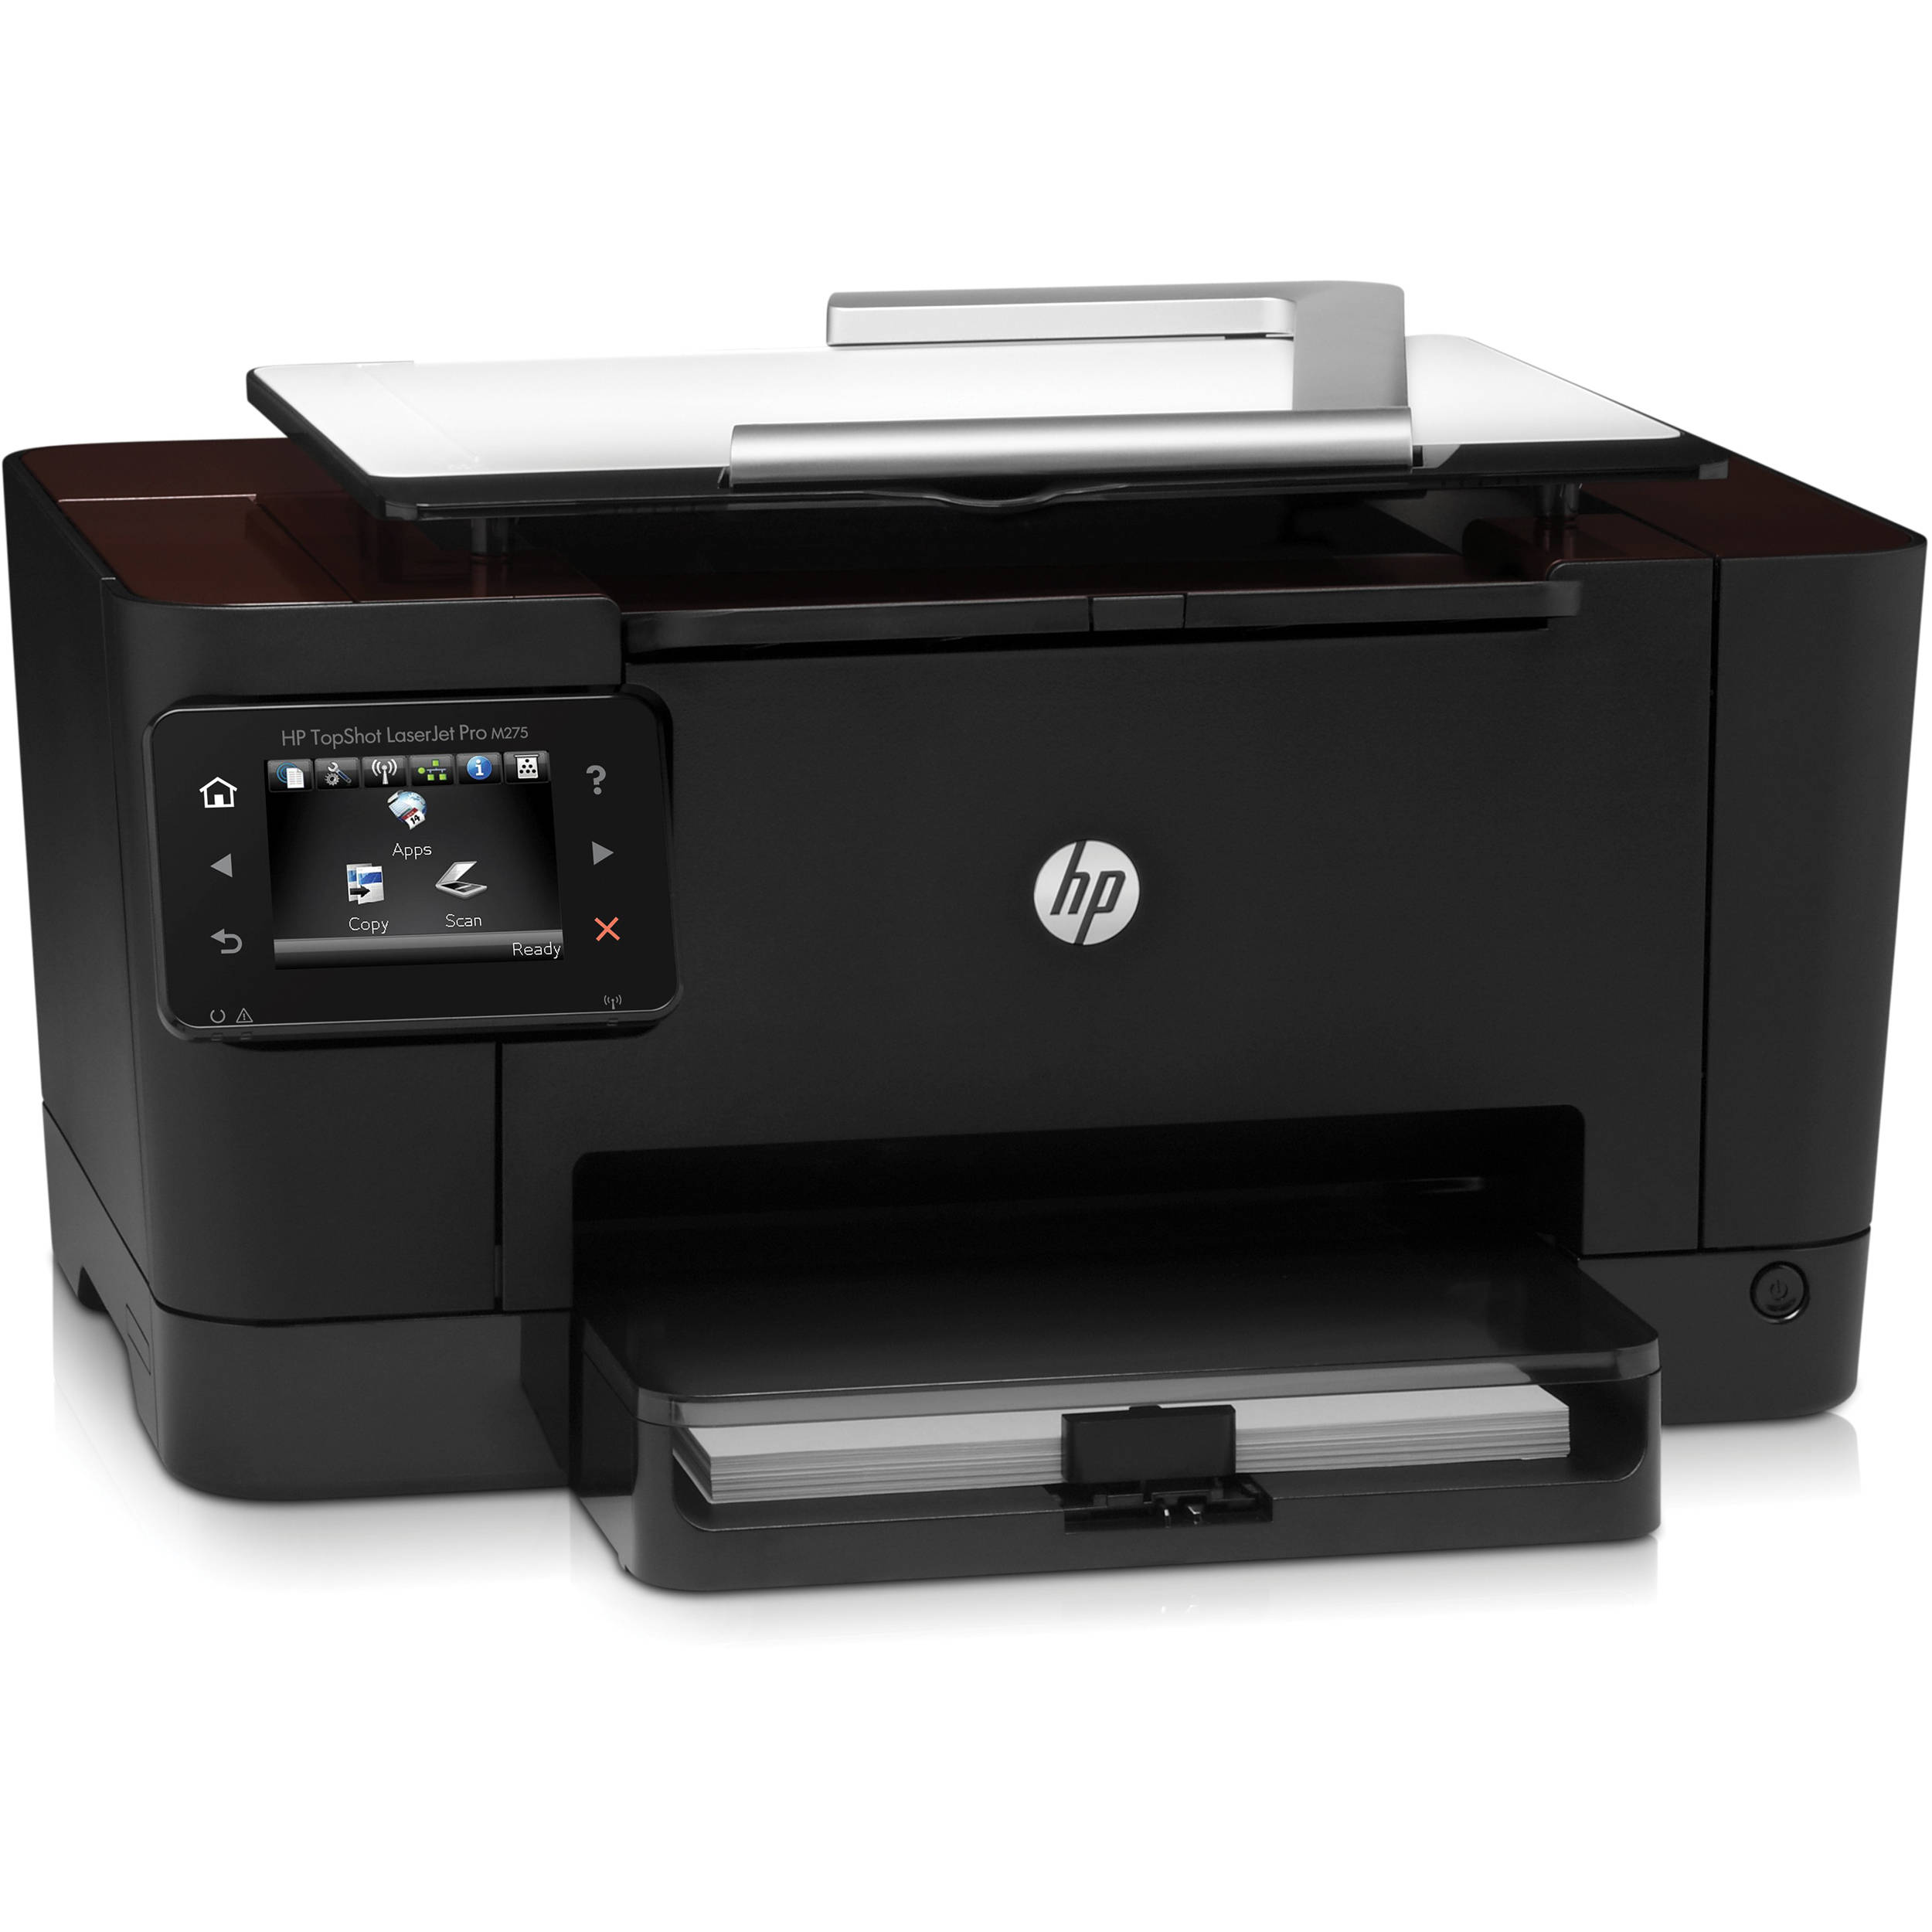 HP TopShot LaserJet Pro M275 Color Laser MFP, Fully Refurbished (CF040A)